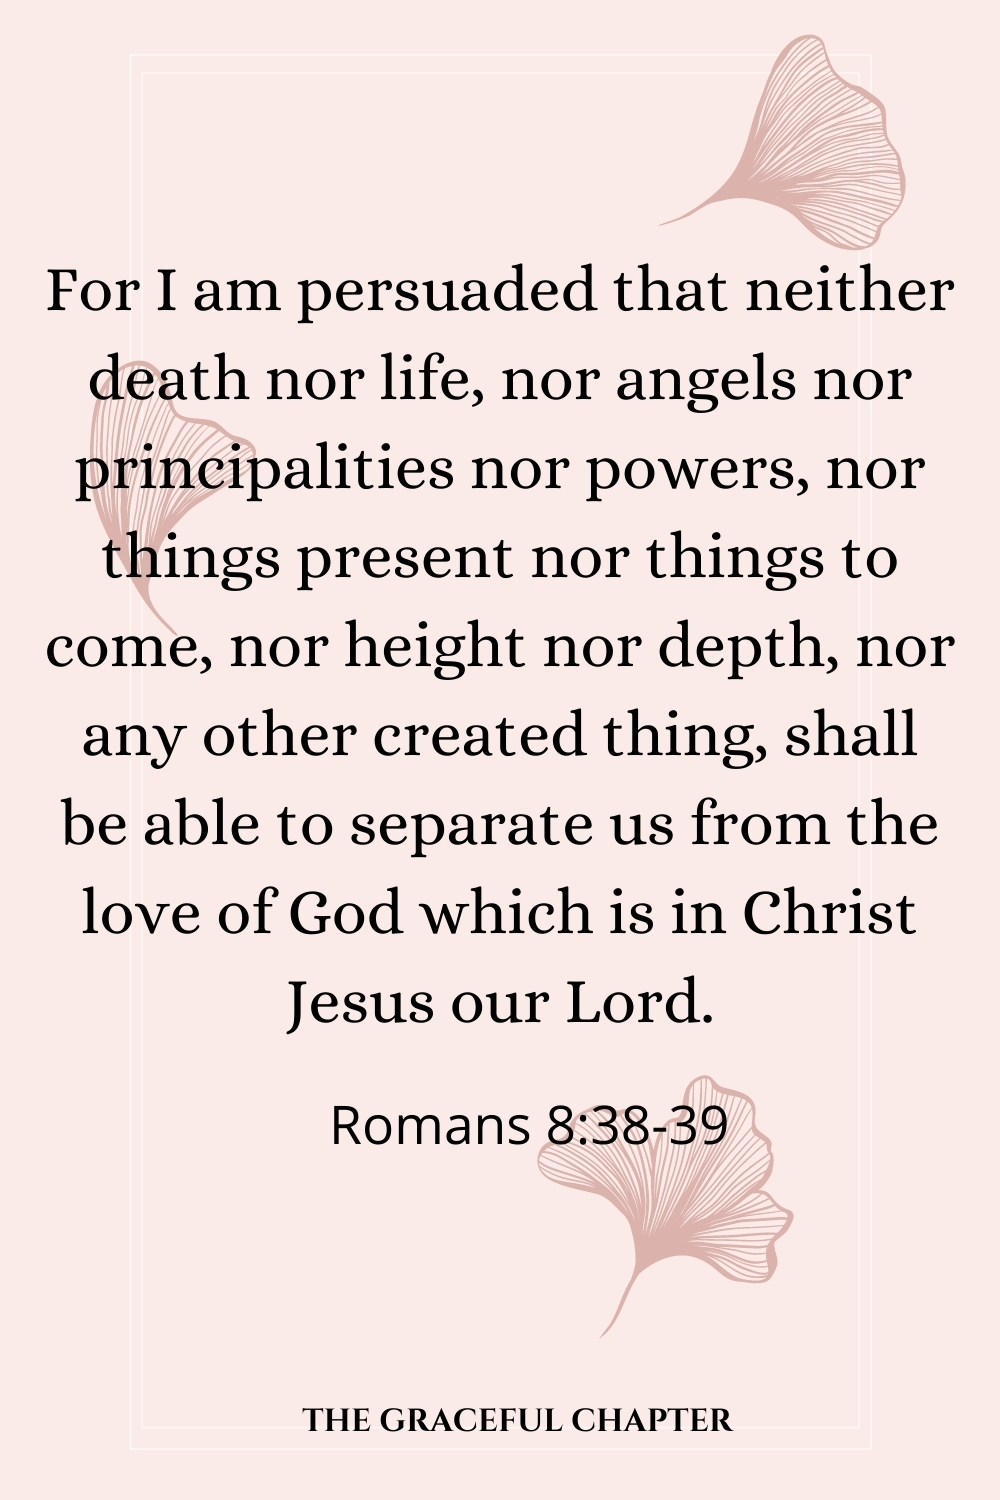 For I am persuaded that neither death nor life, nor angels nor principalities nor powers, nor things present nor things to come, nor height nor depth, nor any other created thing, shall be able to separate us from the love of God which is in Christ Jesus our Lord.  Romans 8:38-39